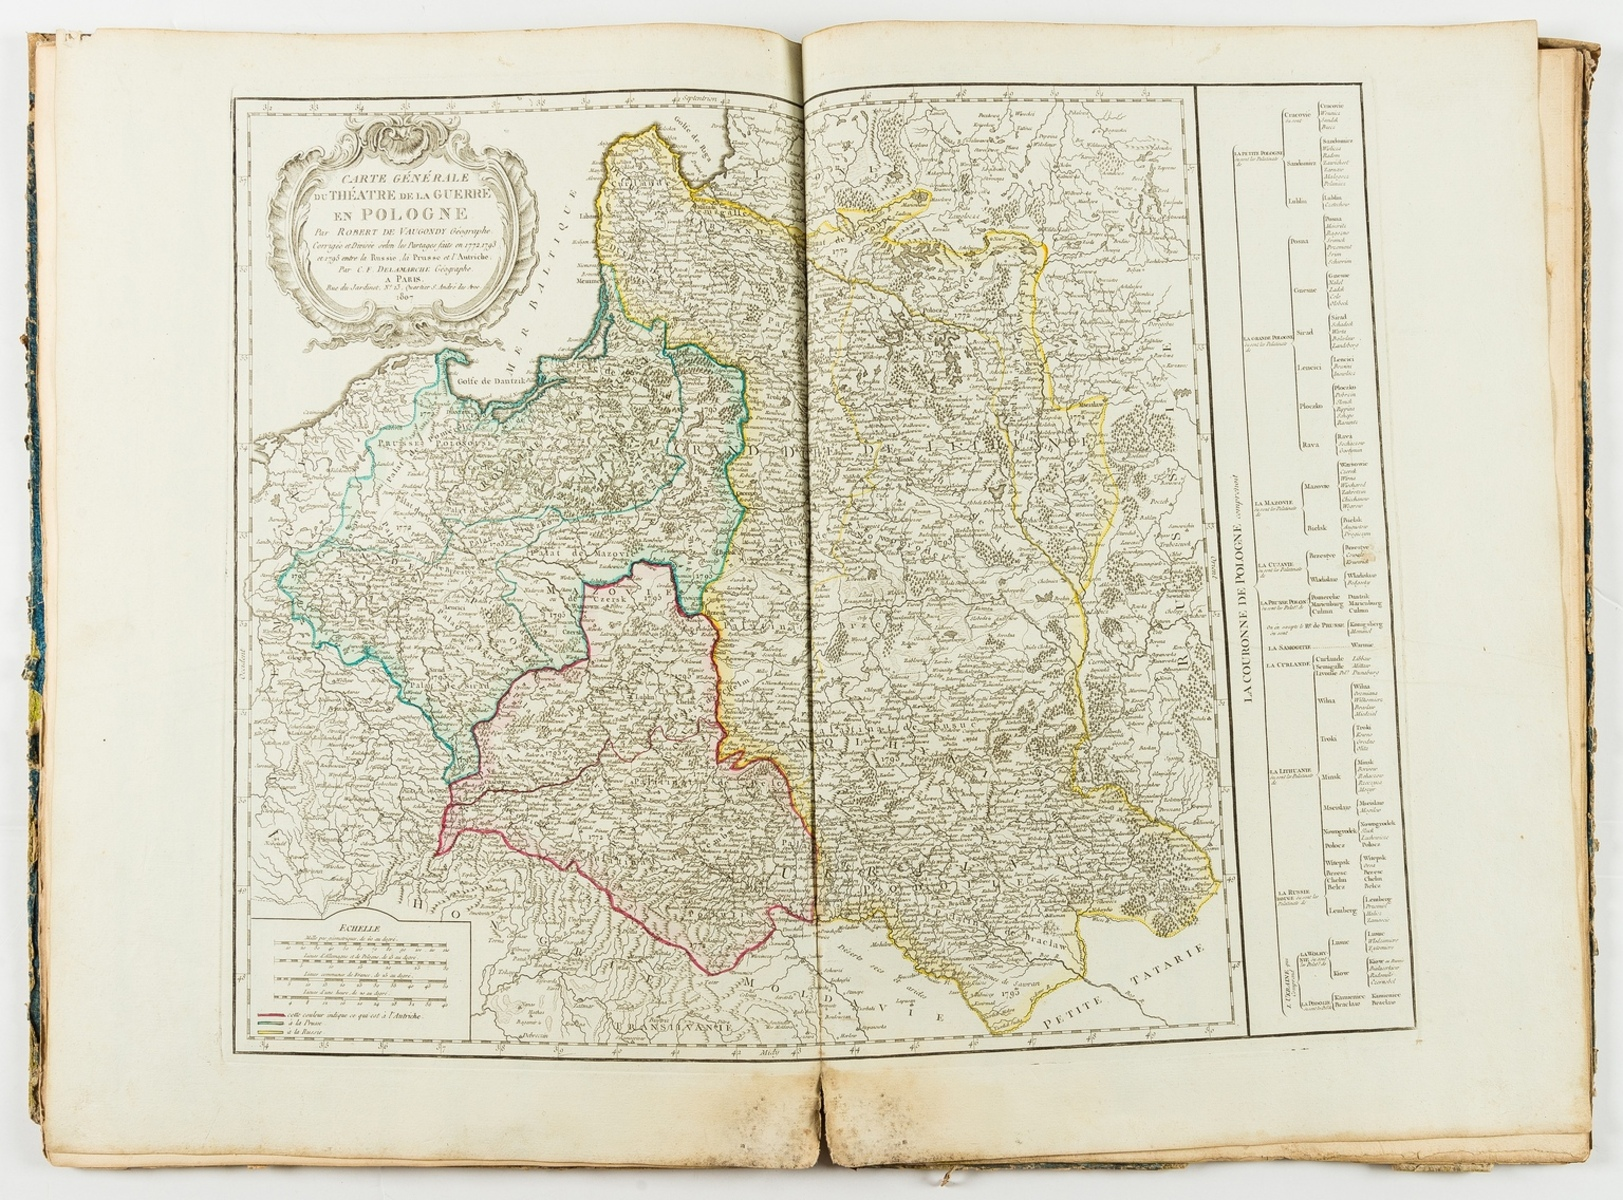 Delamarche (Charles-François) and others. Composite atlas containing 13 double-page maps, [c.1825]